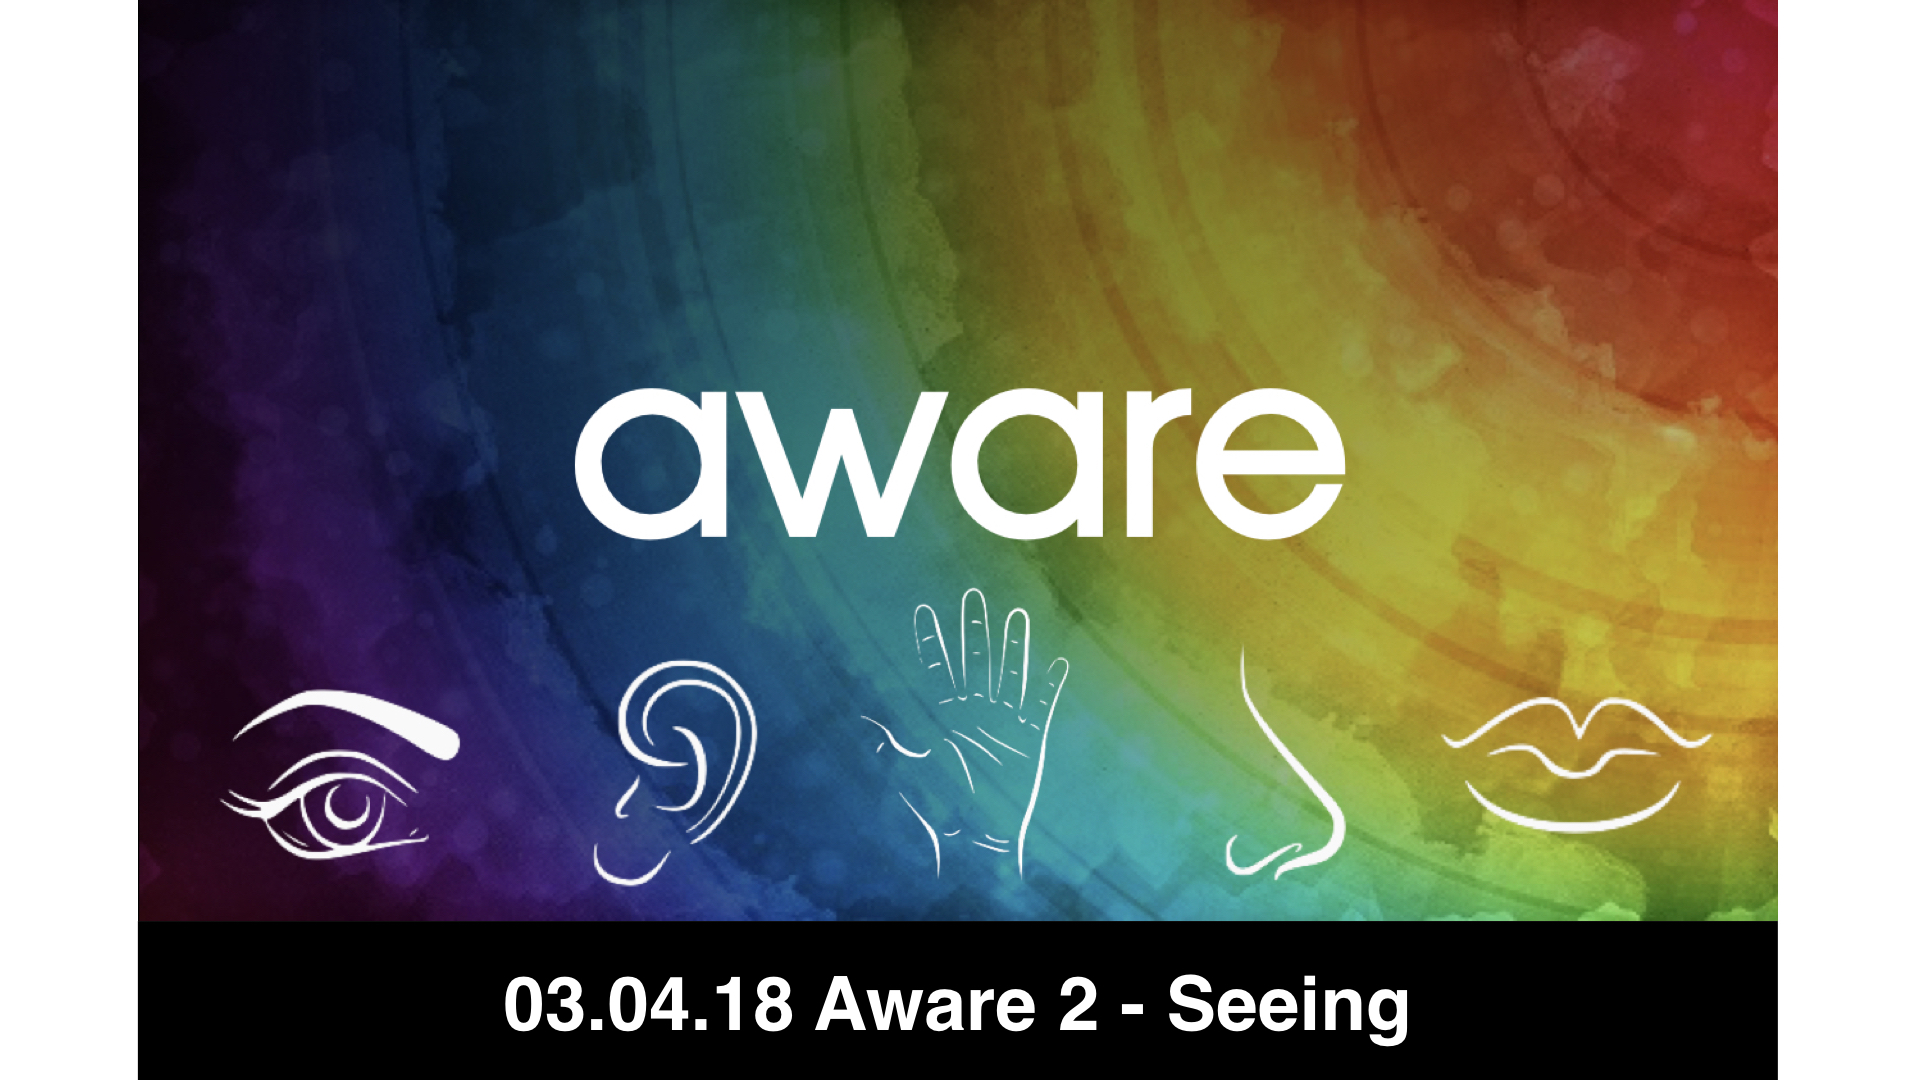 03.04.18 Aware 2 - Seeing